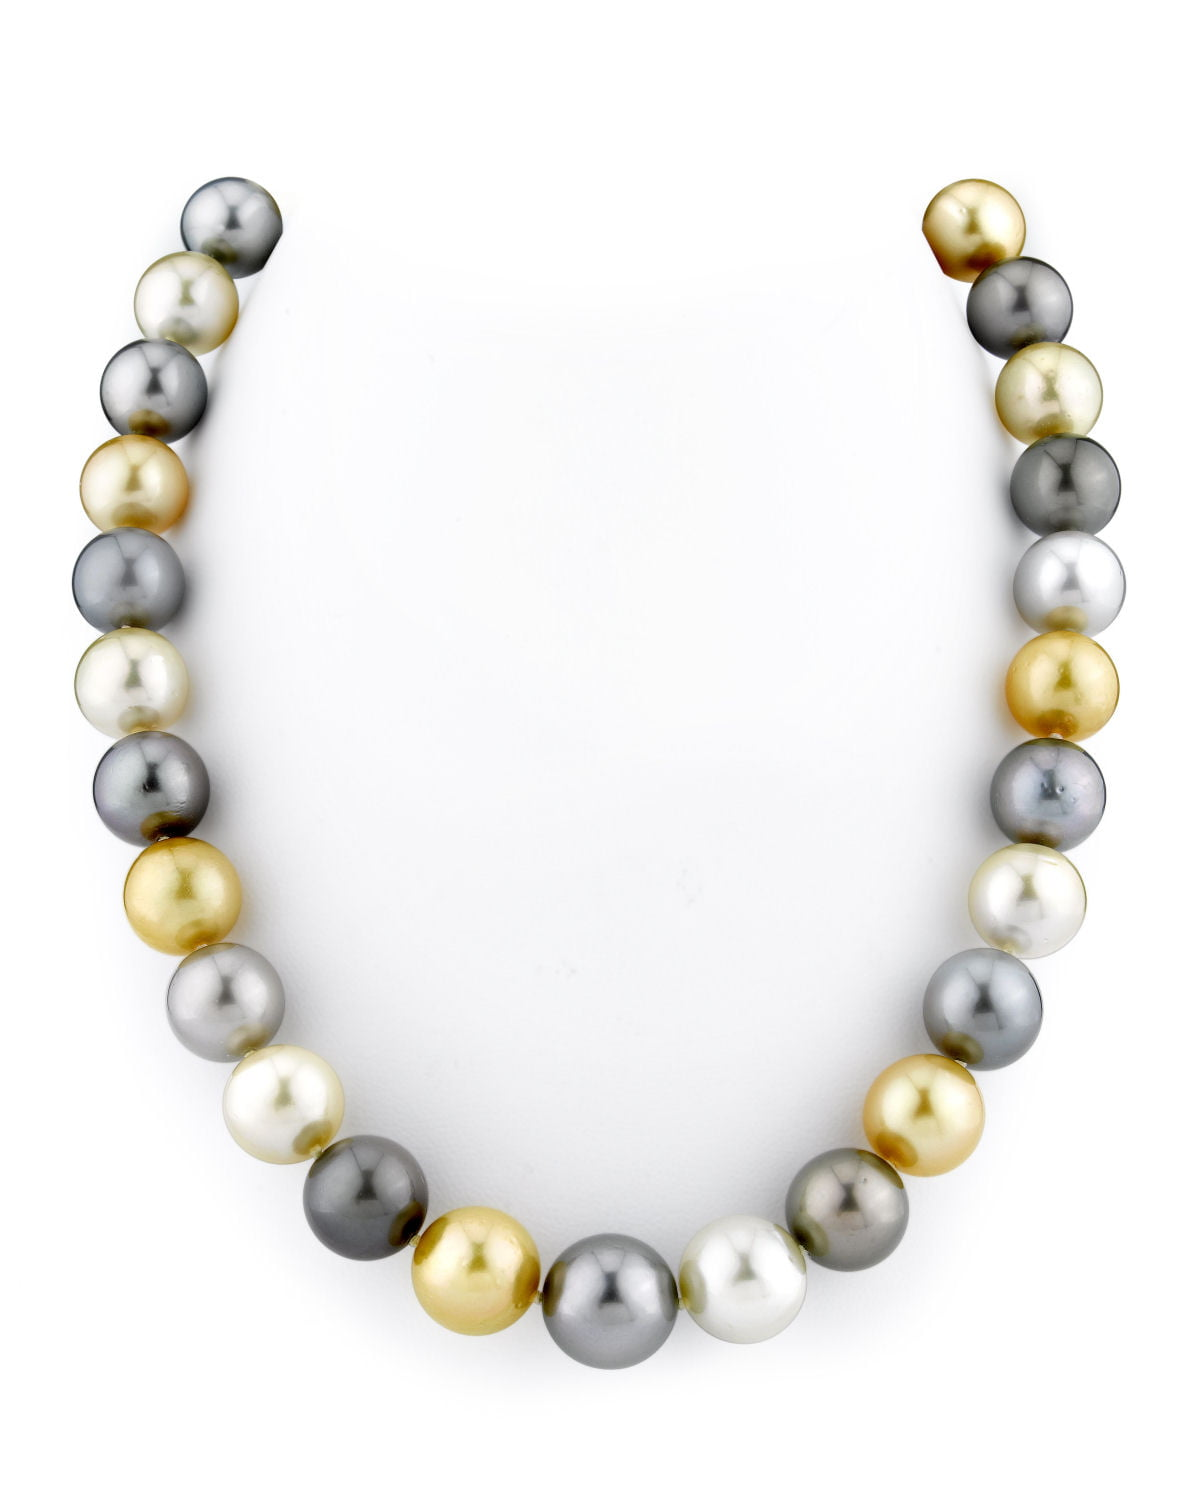 14K Gold 11-14mm Tahitian & Golden South Sea Cultured Pearl Necklace by The Pearl Source